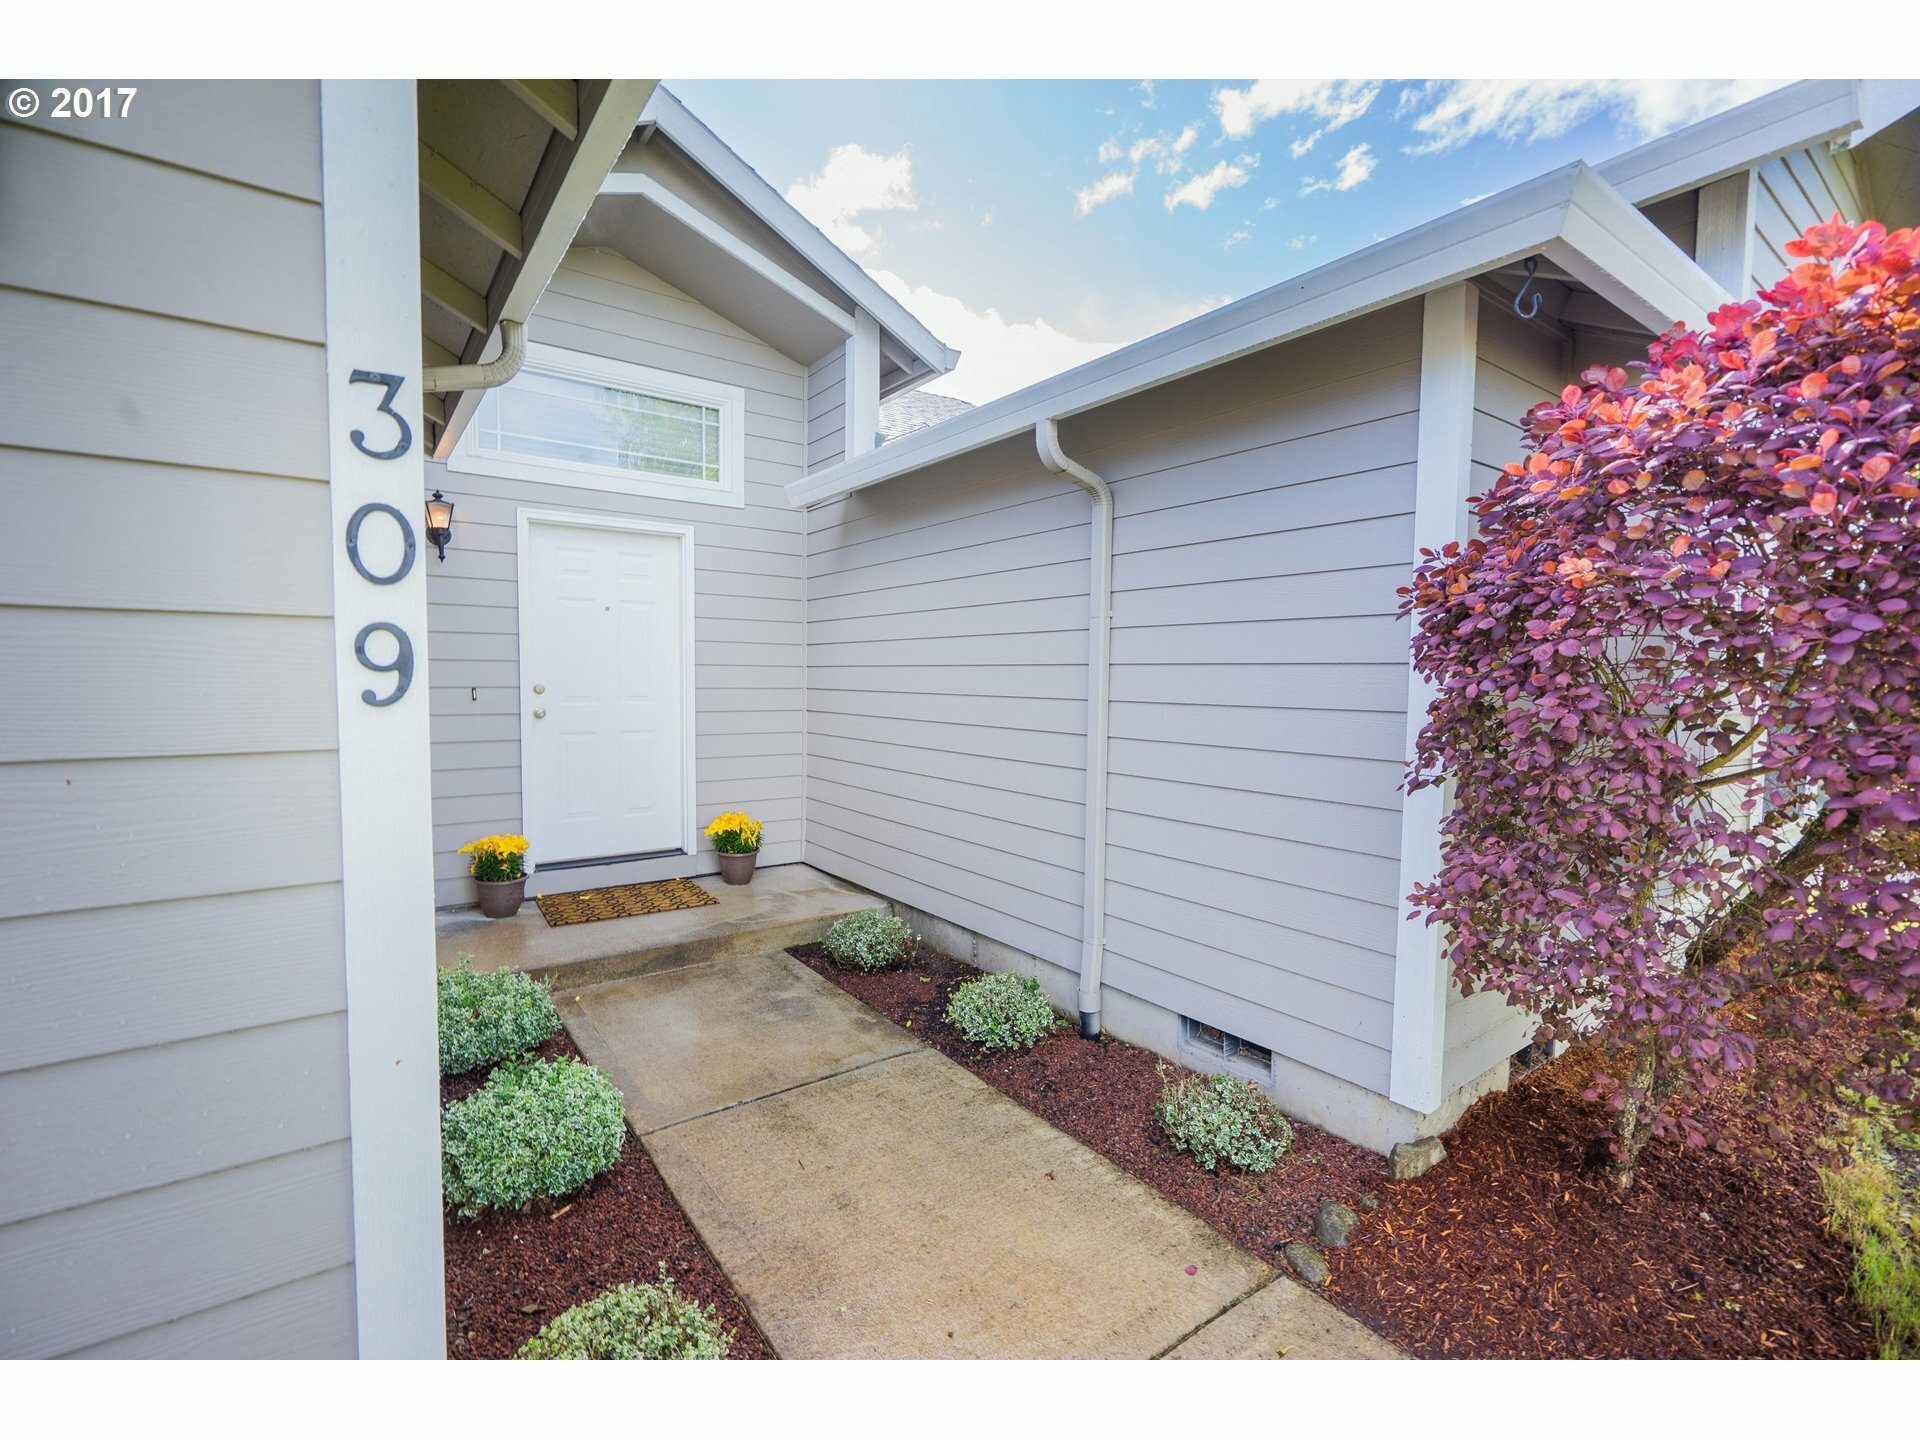 309 Se 171st Ave, Vancouver, WA - USA (photo 2)